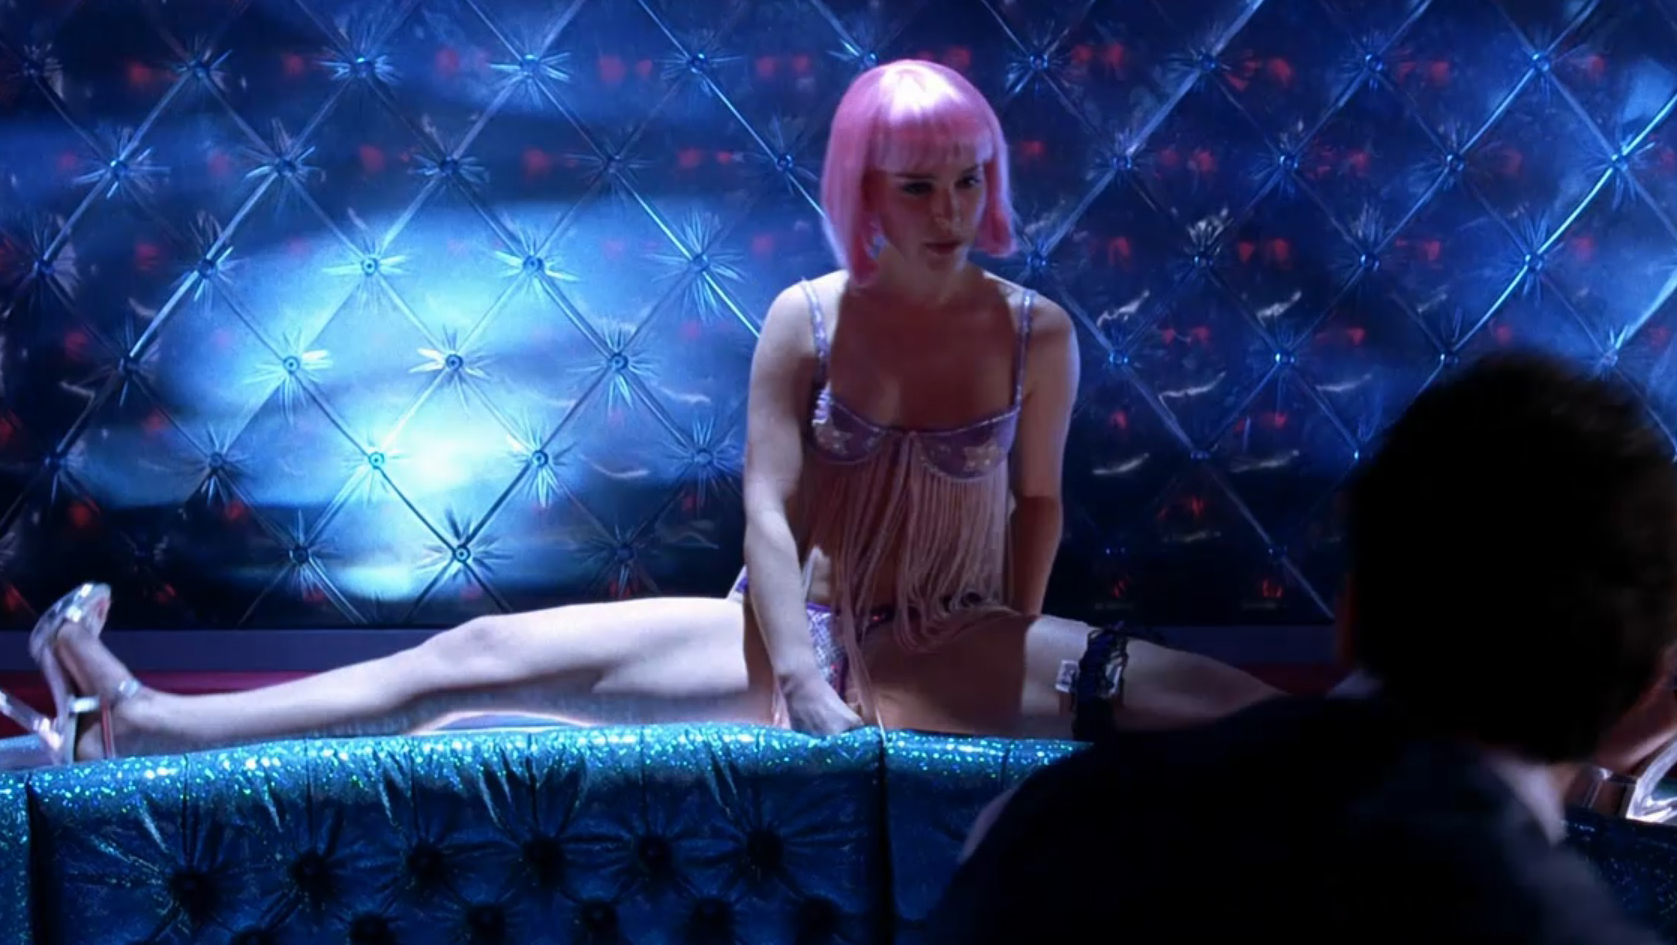 scene sex Natalie video portman